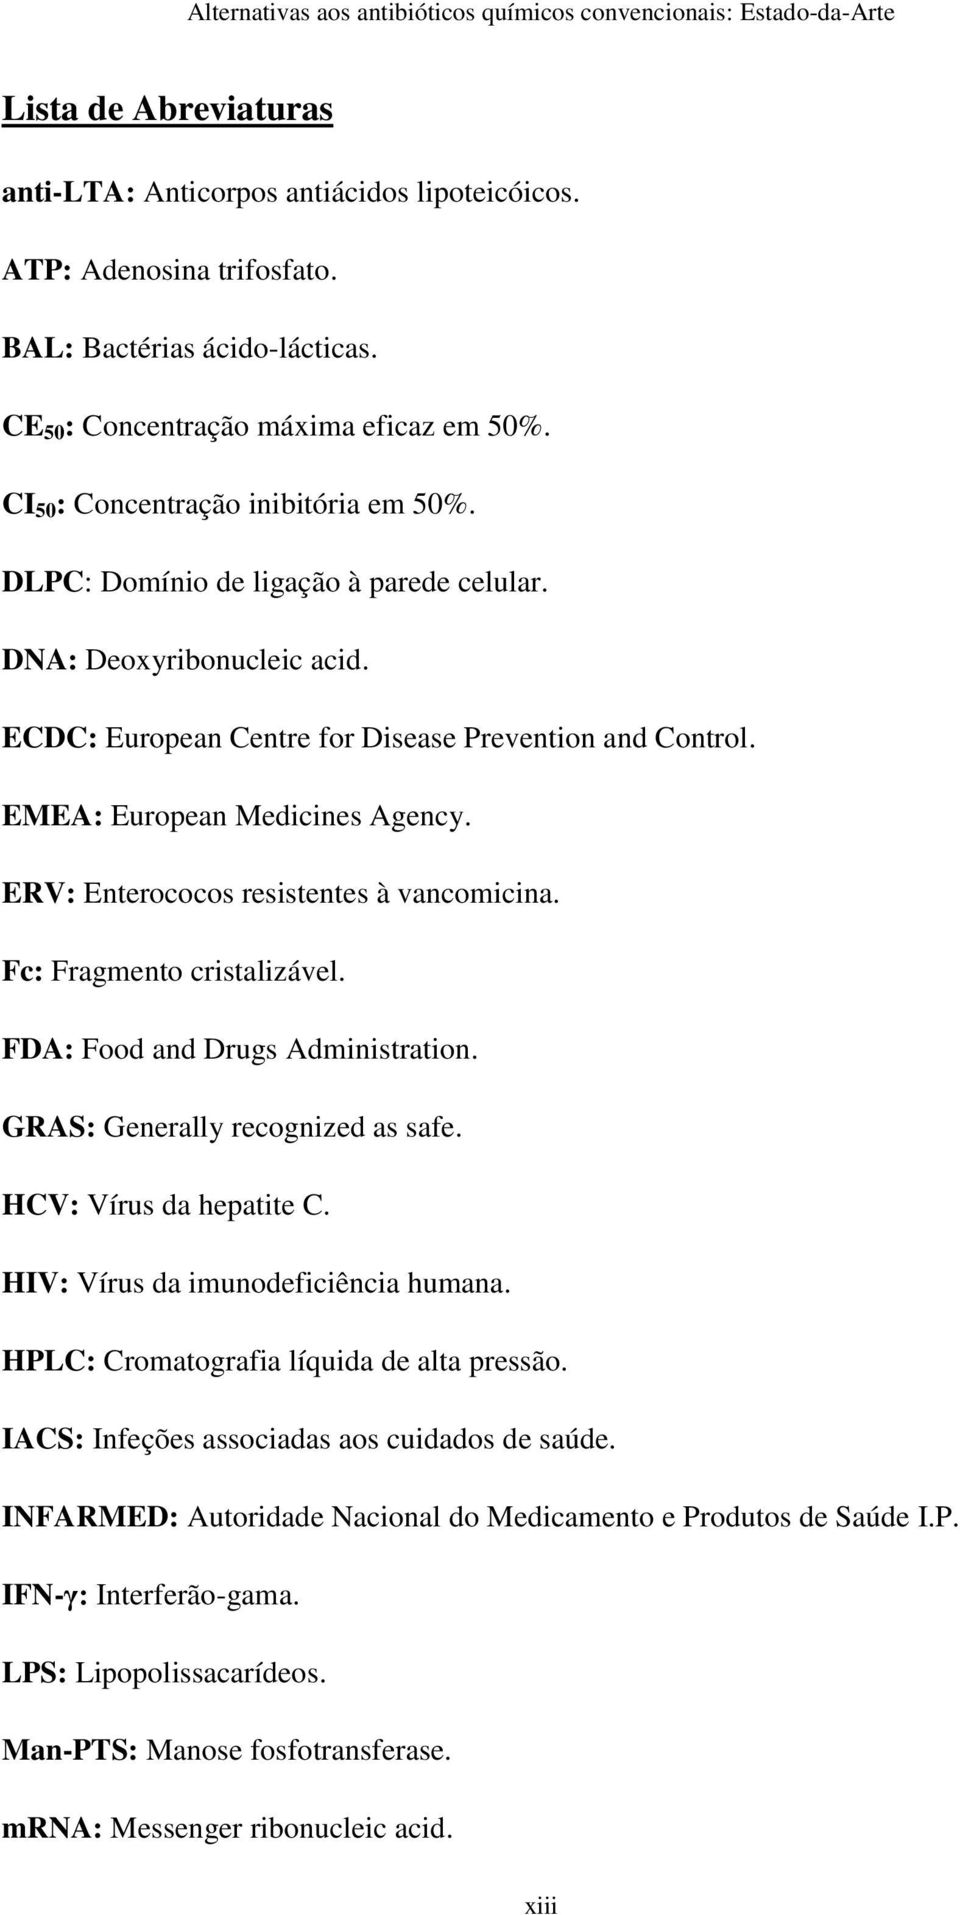 EMEA: European Medicines Agency. ERV: Enterococos resistentes à vancomicina. Fc: Fragmento cristalizável. FDA: Food and Drugs Administration. GRAS: Generally recognized as safe.